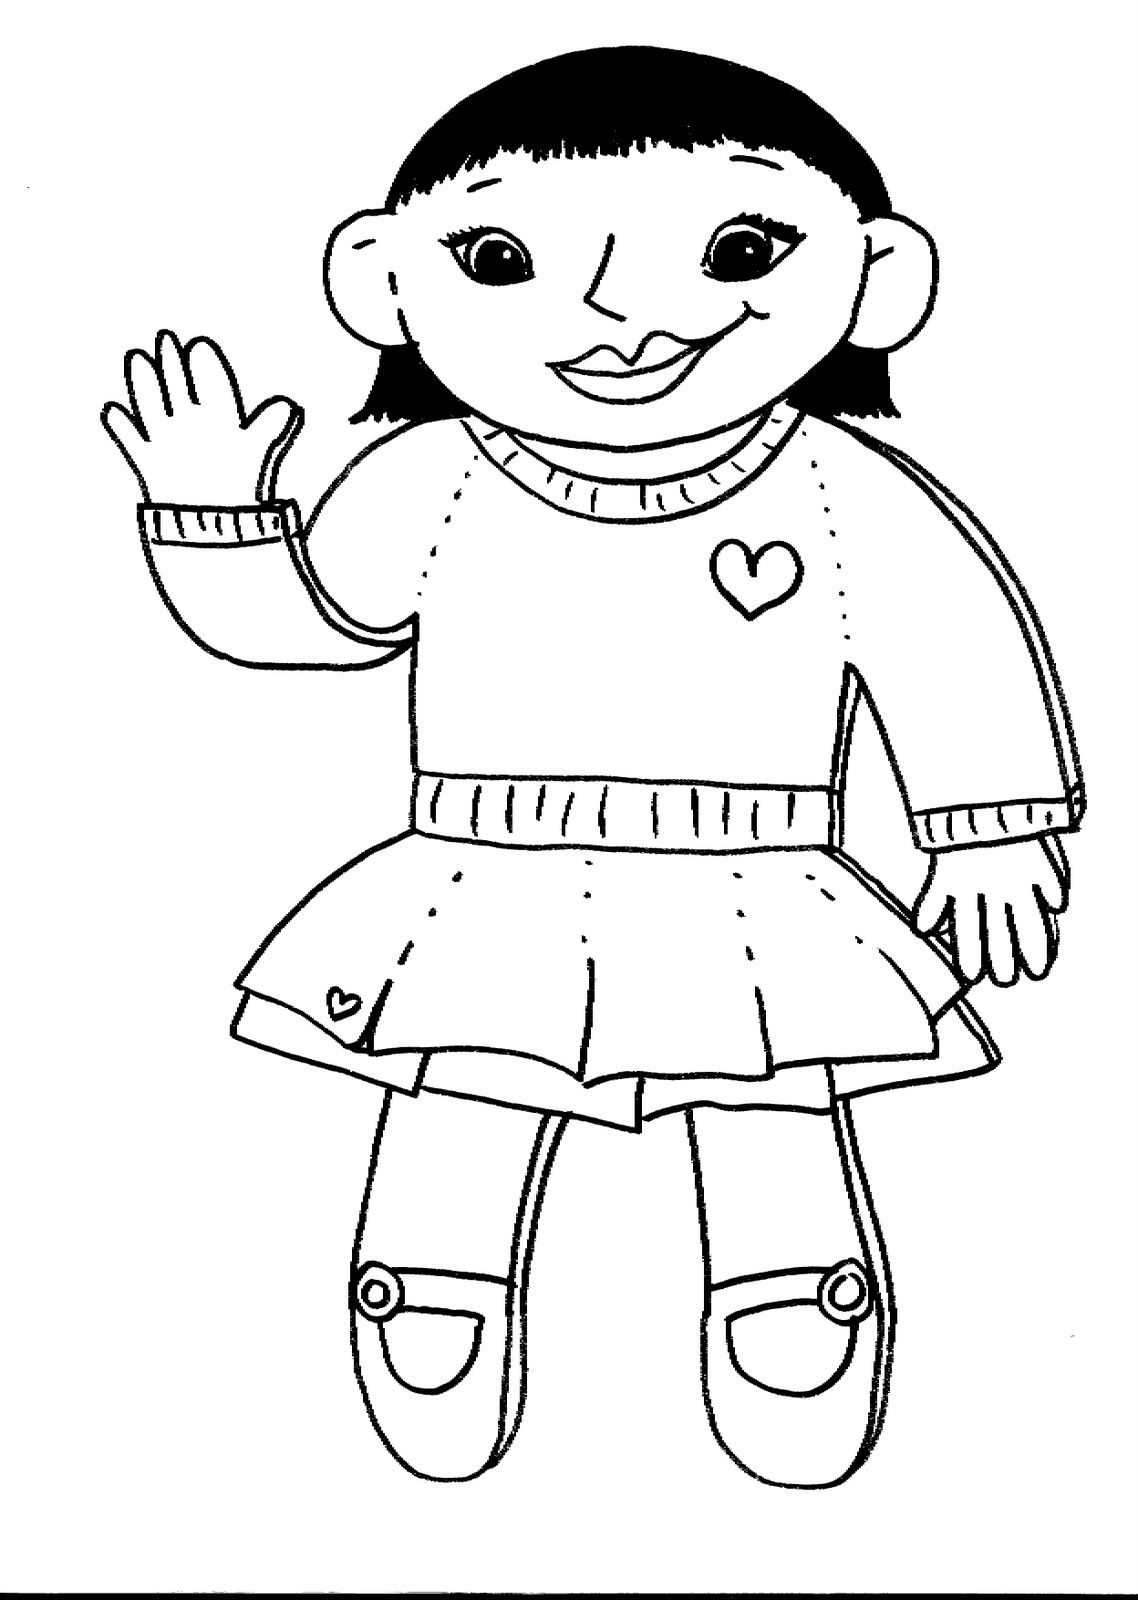 Flat Stanley Coloring Page Pdf | flat stanley | Pinterest | Flat stanley